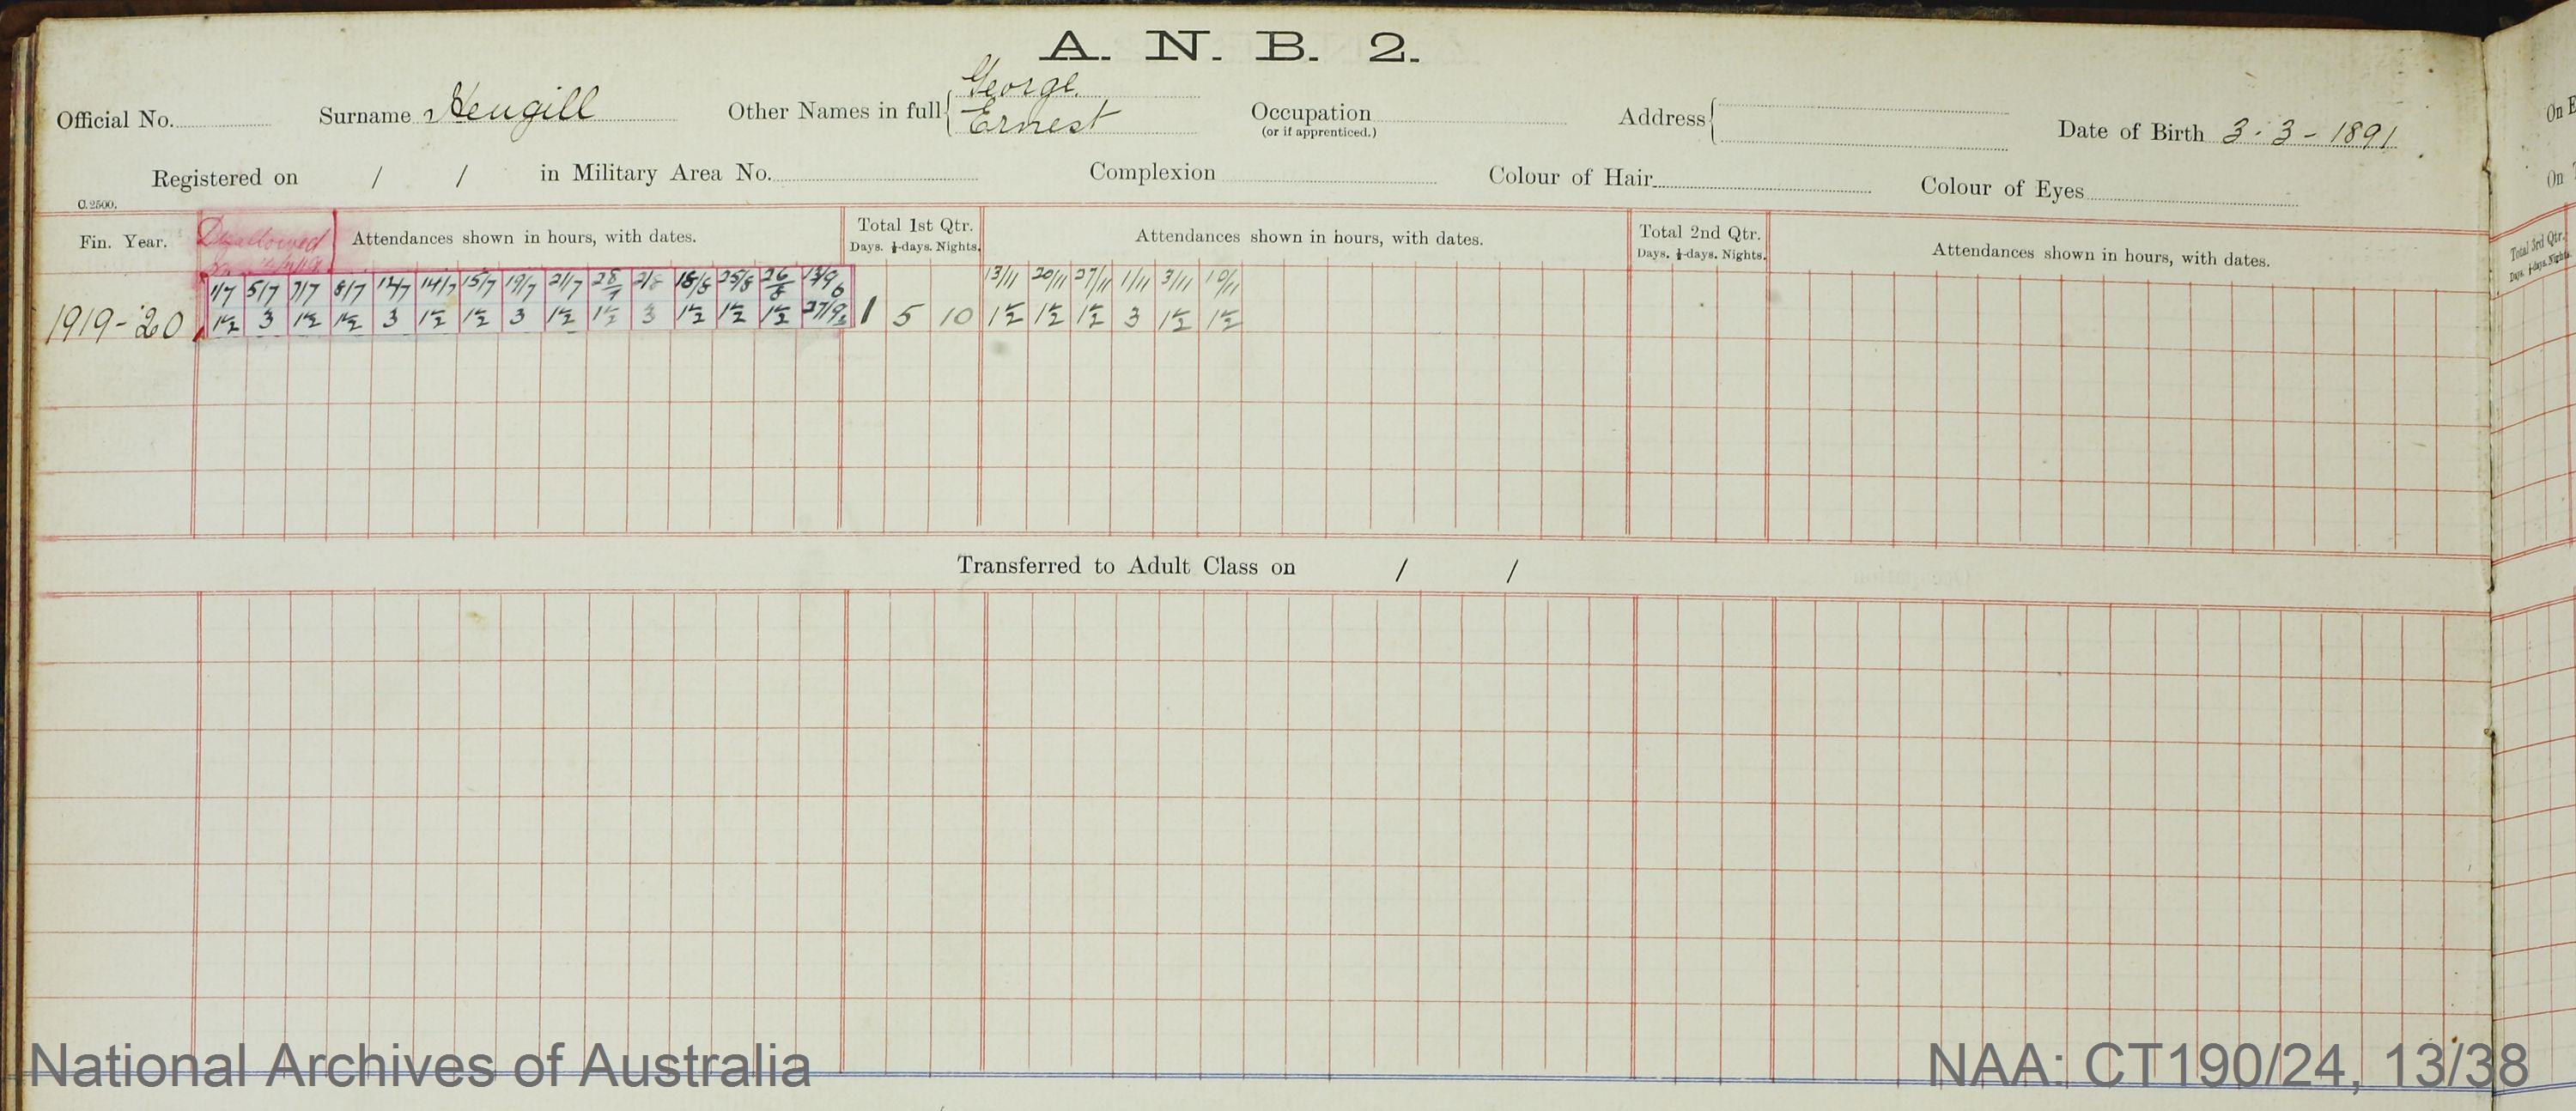 SURNAME - HEUGILL;  GIVEN NAME(S) - George Ernest;  OFFICIAL NUMBER - [Unknown];  DATE OF BIRTH - 3 March 1891;  PLACE OF BIRTH - [Unknown];  NEXT OF KIN - [Unknown];  SERVICE/STATION - Sydney NSW;  REGISTRATION DATE - [Unknown]